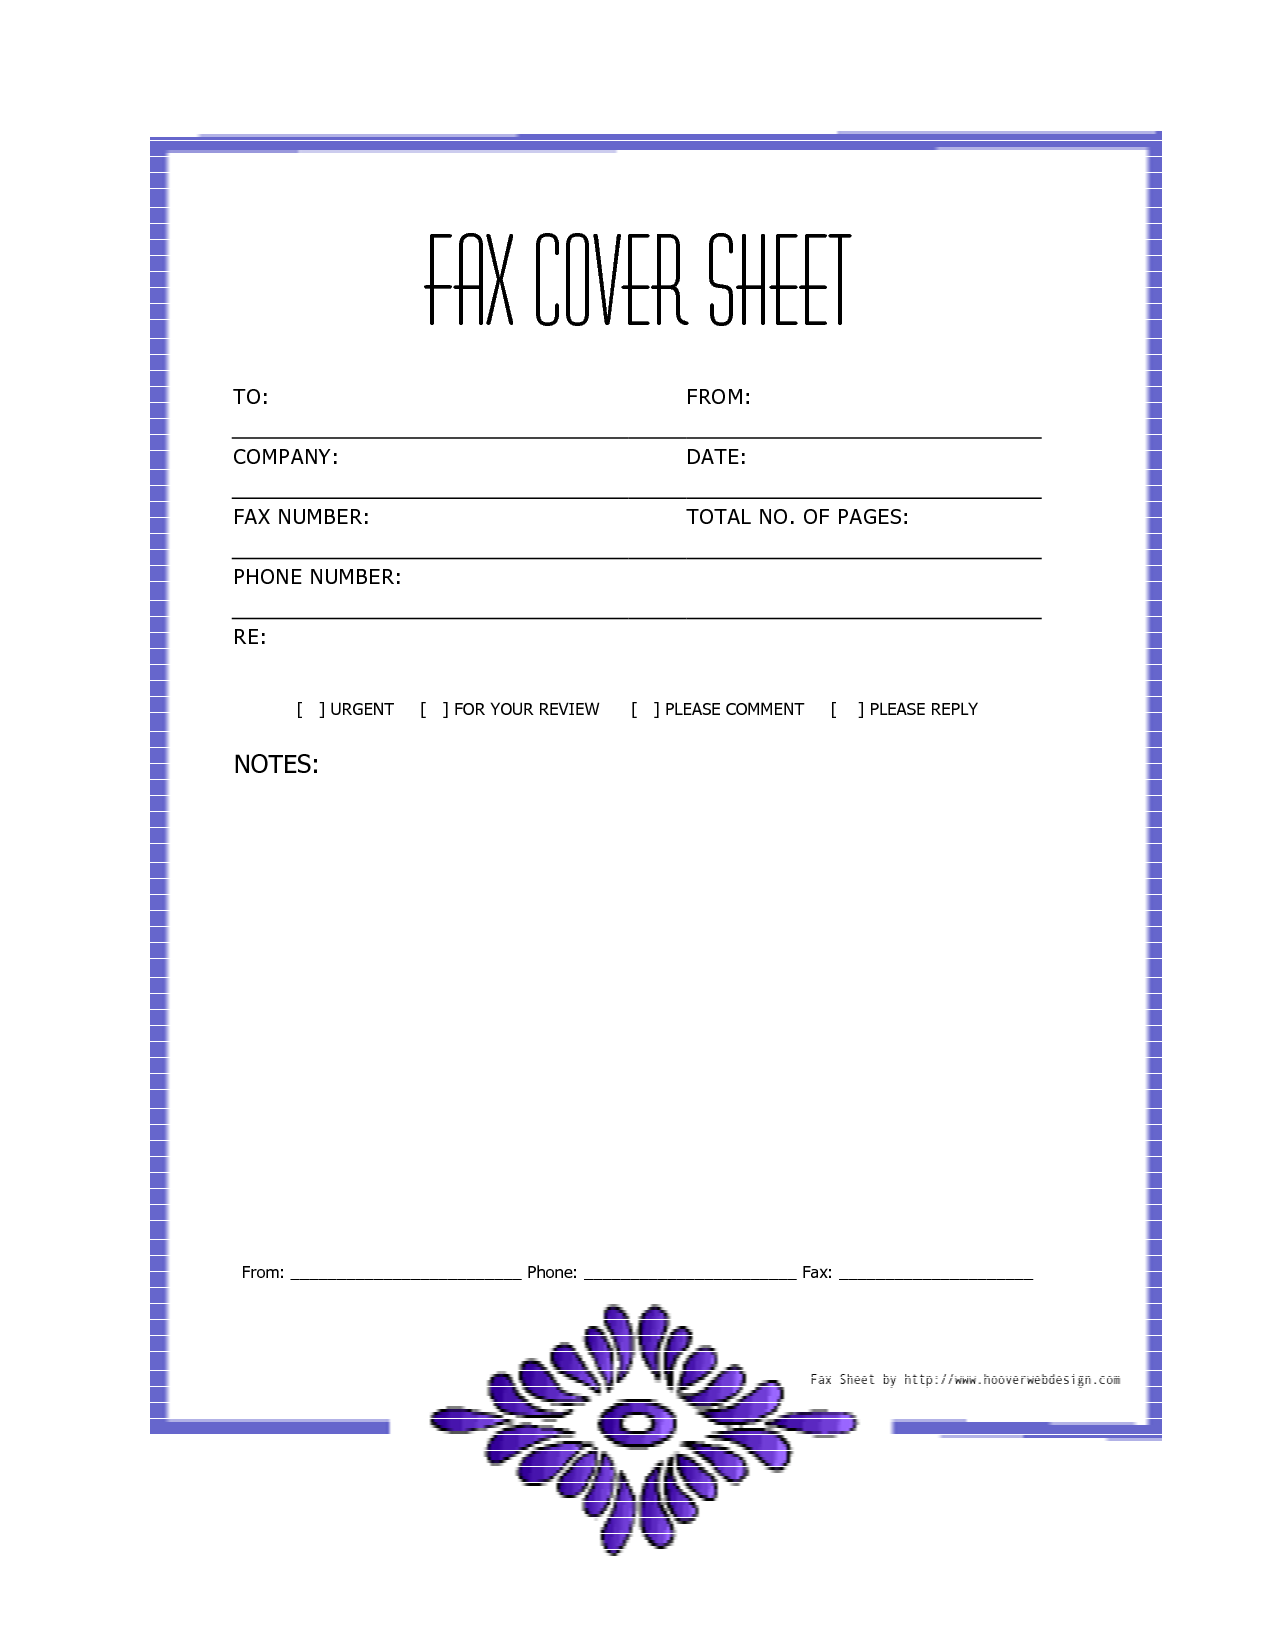 blank fax cover page fax cover sheet template printable s fax covers sheets printable fax cover sheet template elegant as